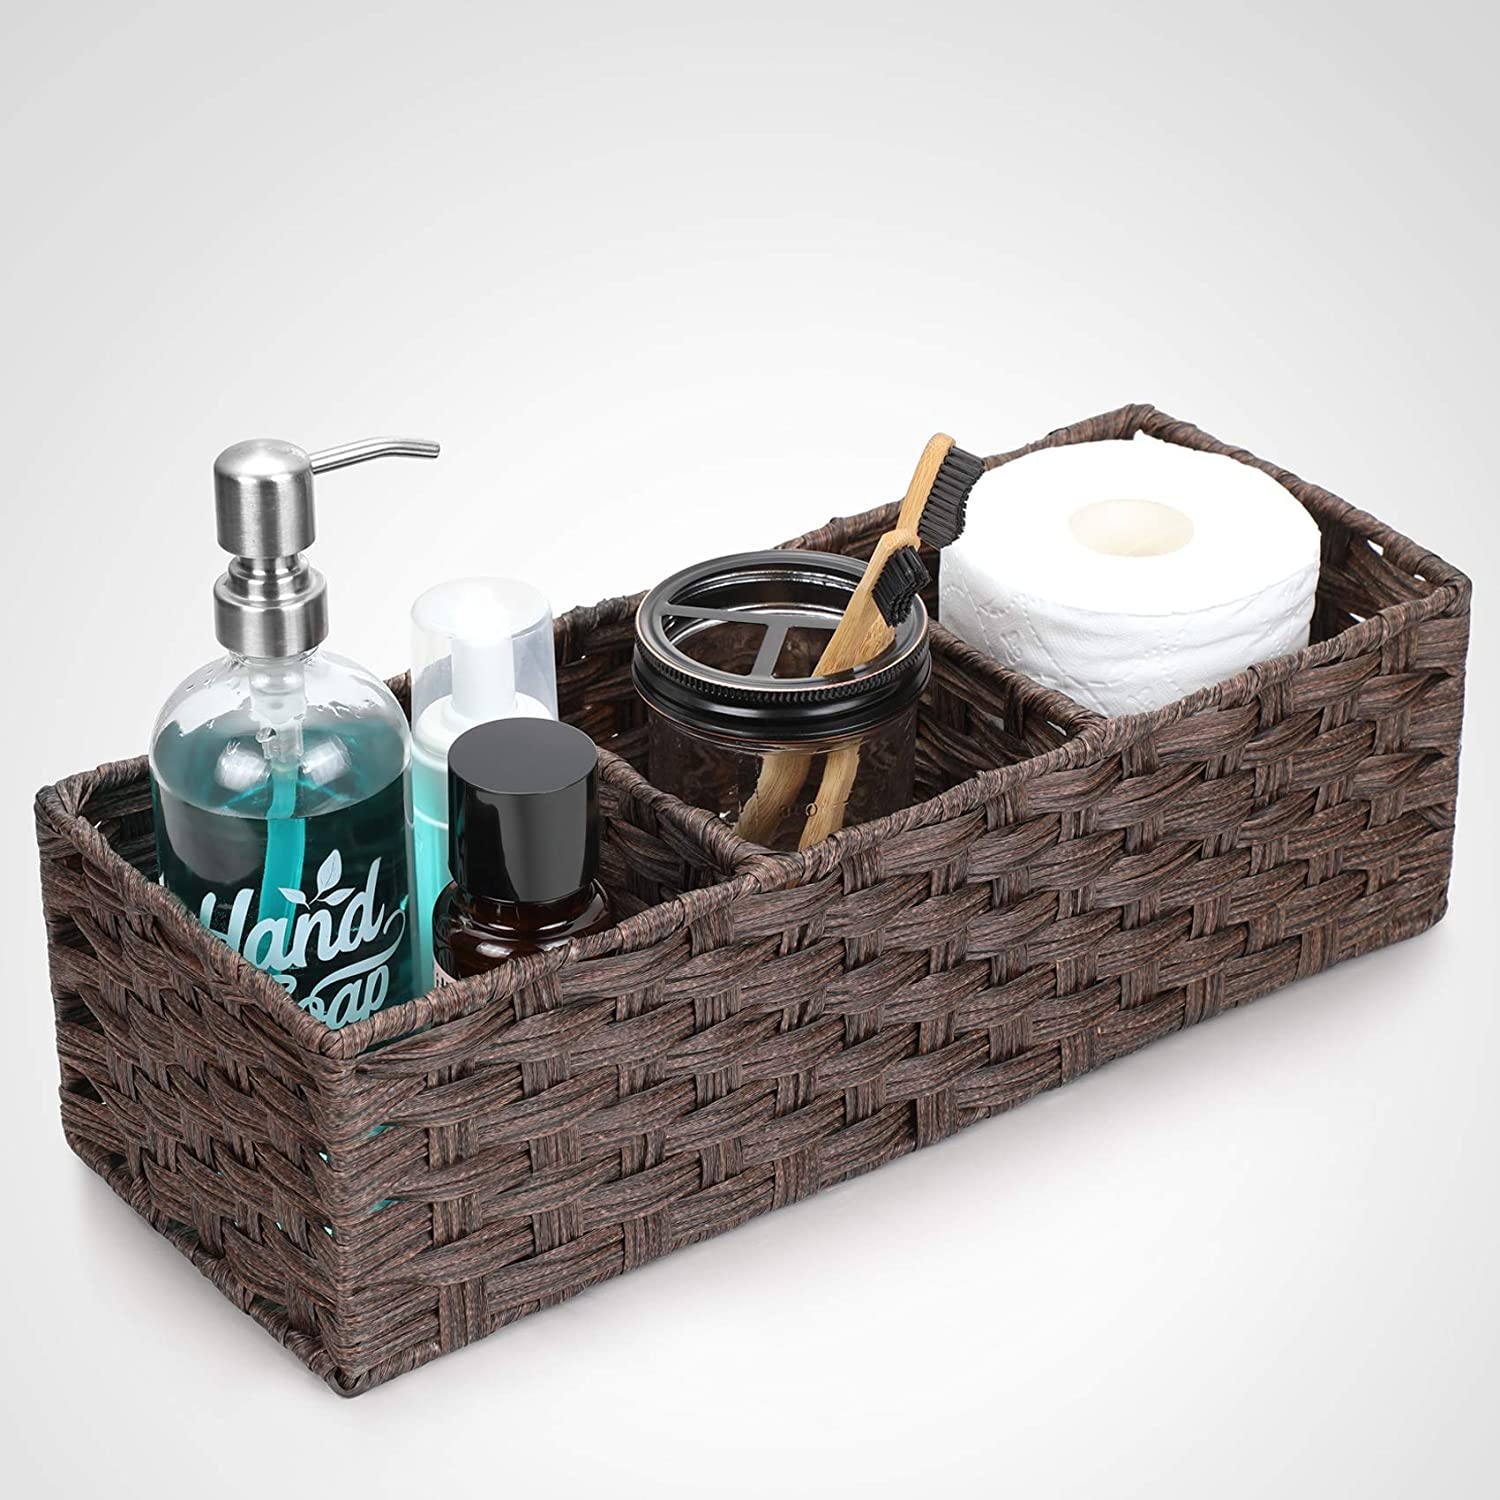 [Larger Compartments] Toilet Paper Basket for Tank Topper - Over, Top, Back of Toilet Tank Tray Split Hand-woven Basket - Rustic, Farmhouse Bathroom Decor, Storage Bin, Counter Organizer Basket, Brown